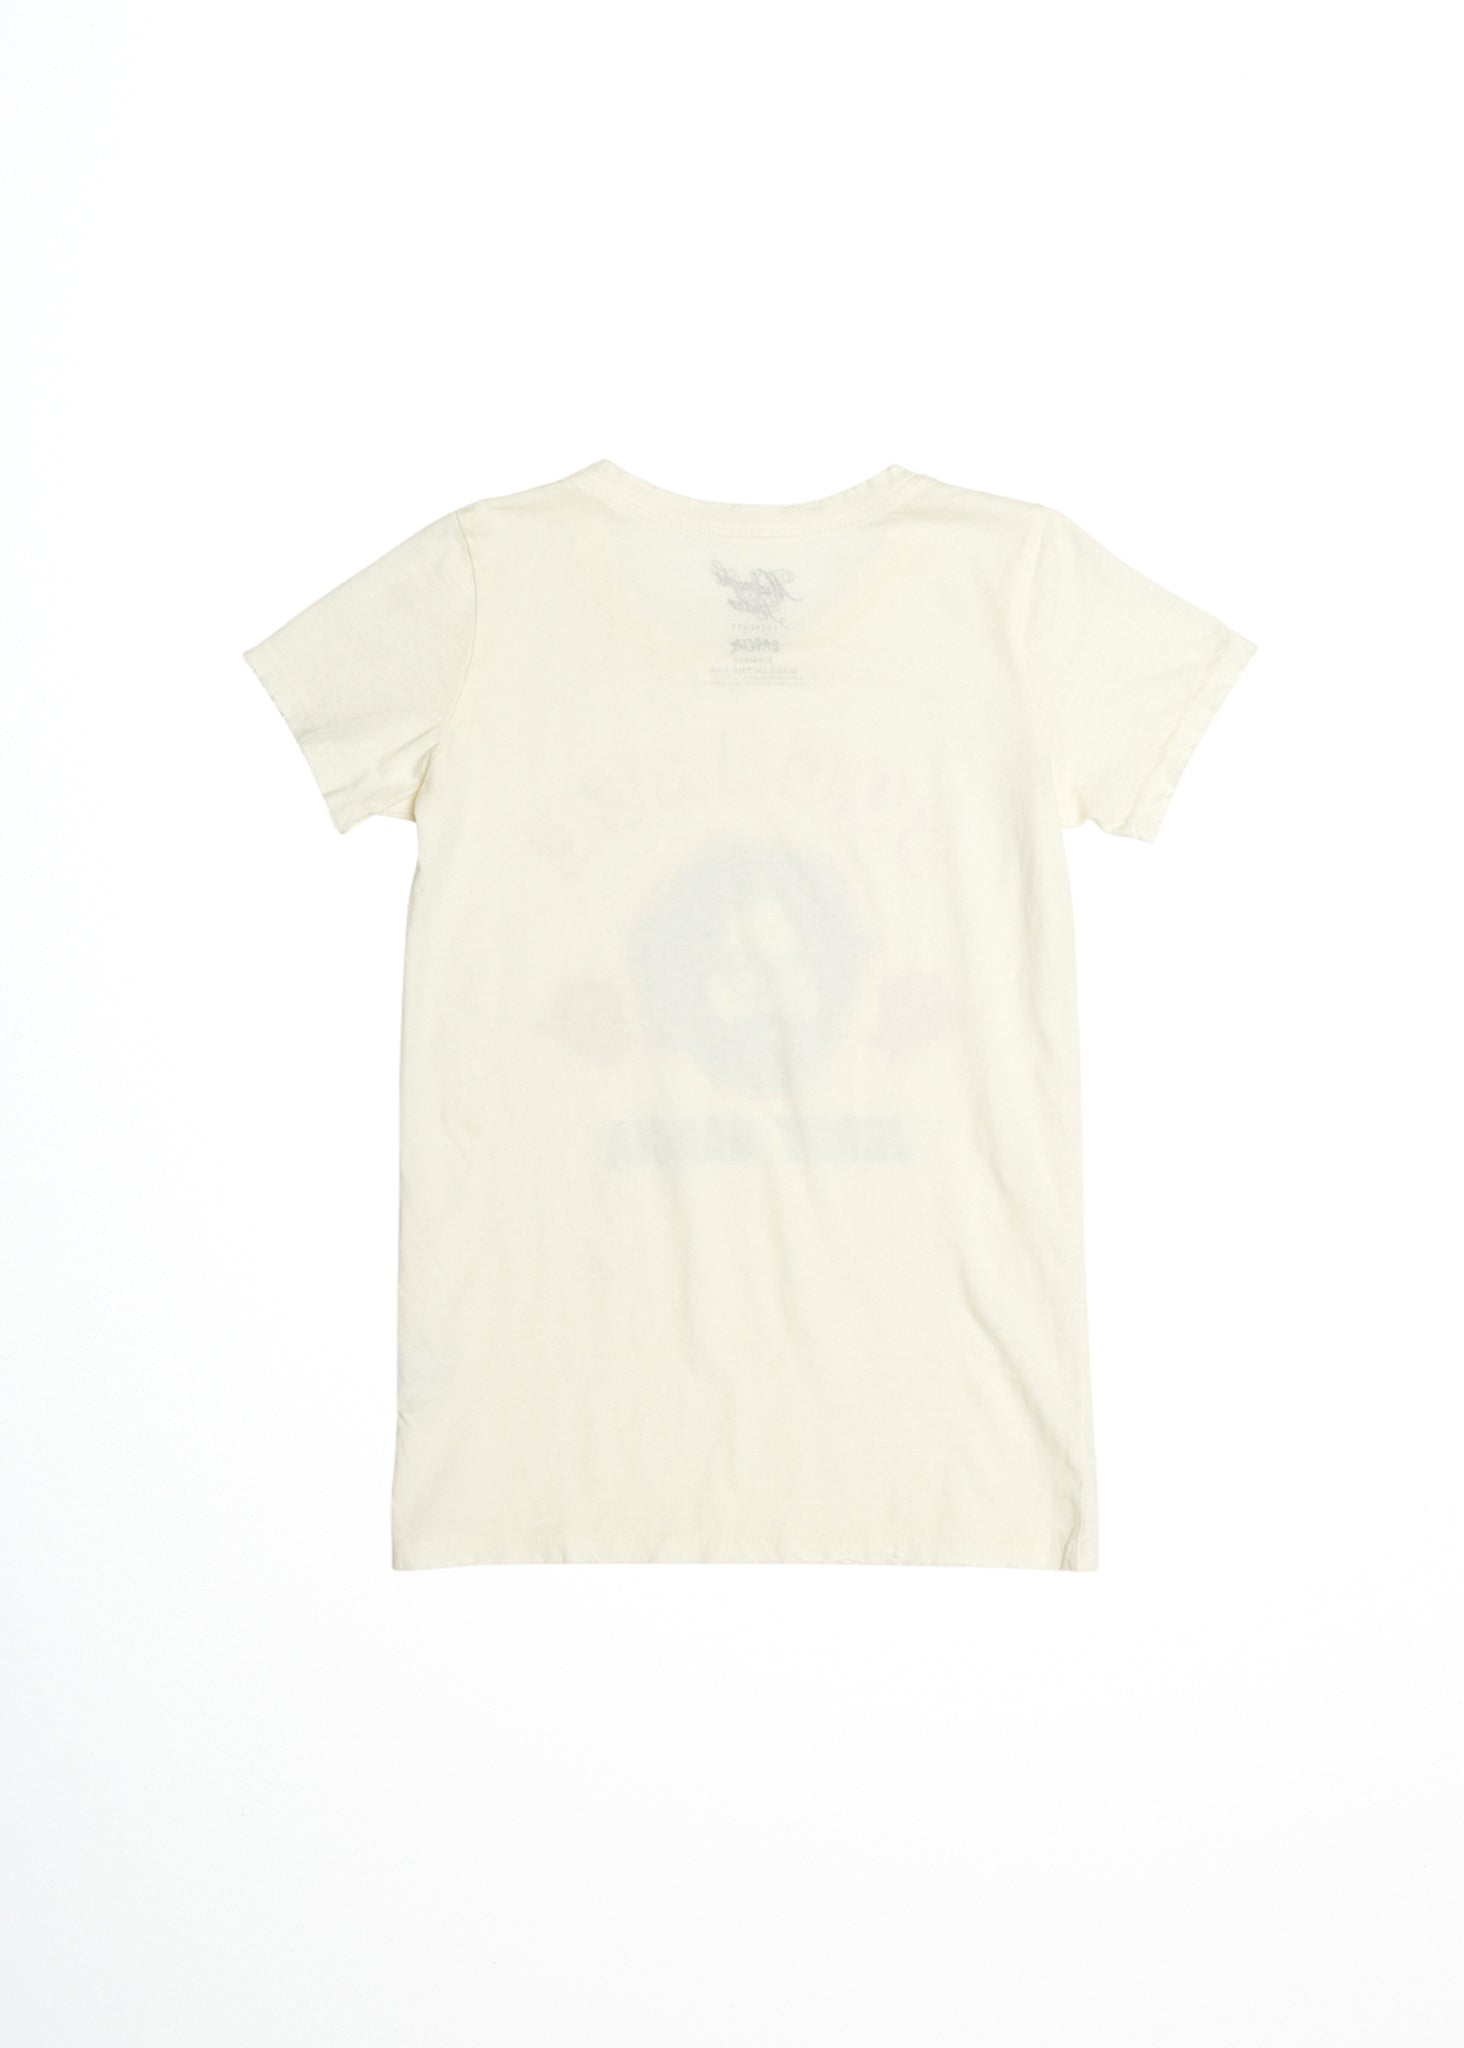 Jerry Garcia Sugaree Women's Crew T-Shirt